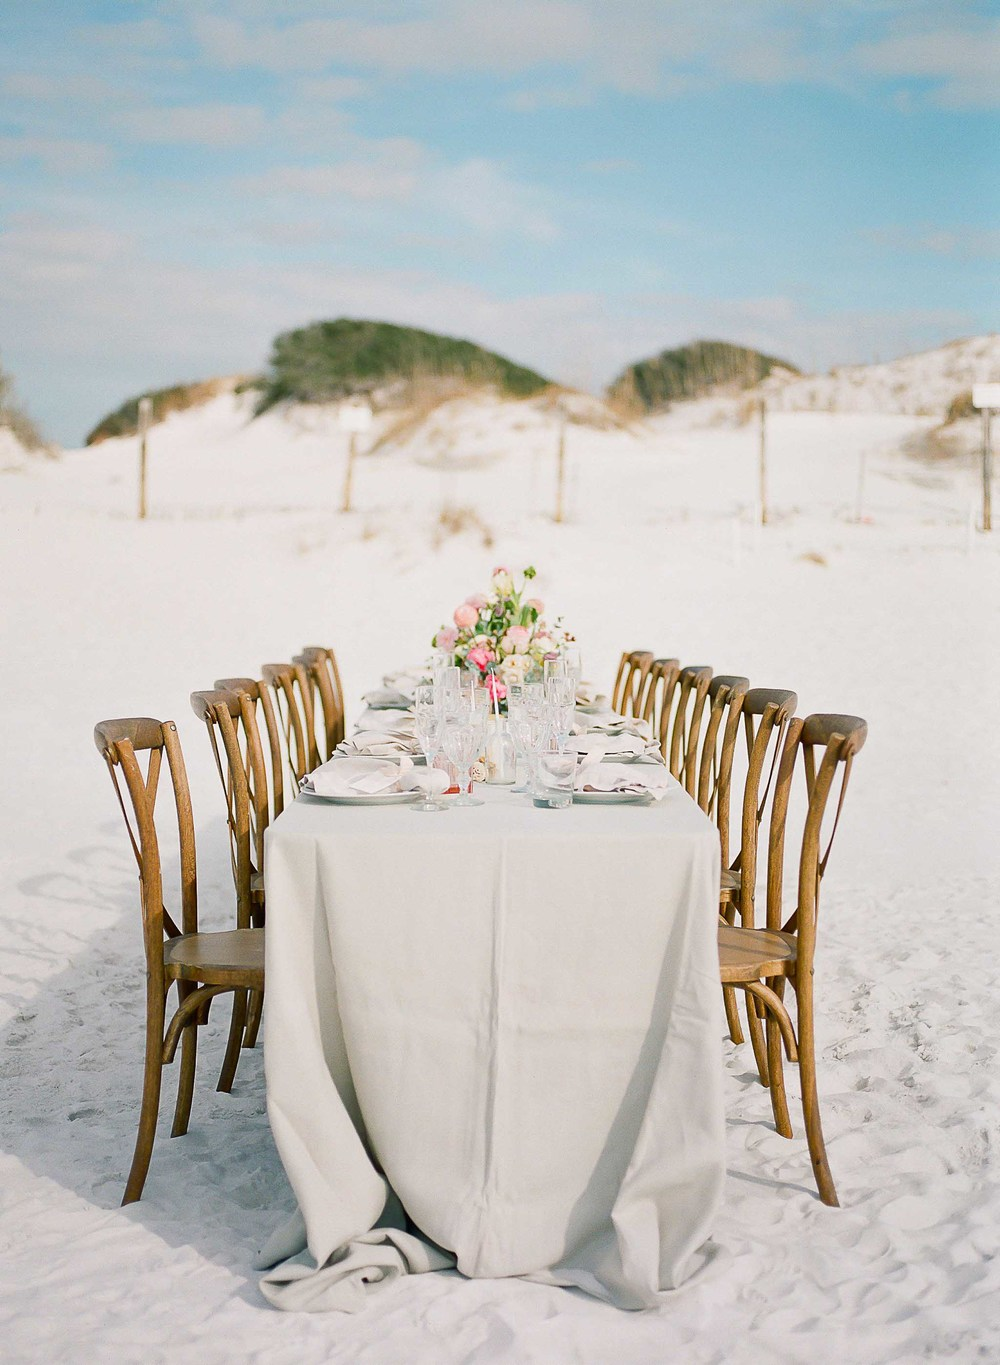 Kaylie Poplin Photography and Victoria Austin Designs on Style Me Pretty | Beach Bridal Shower